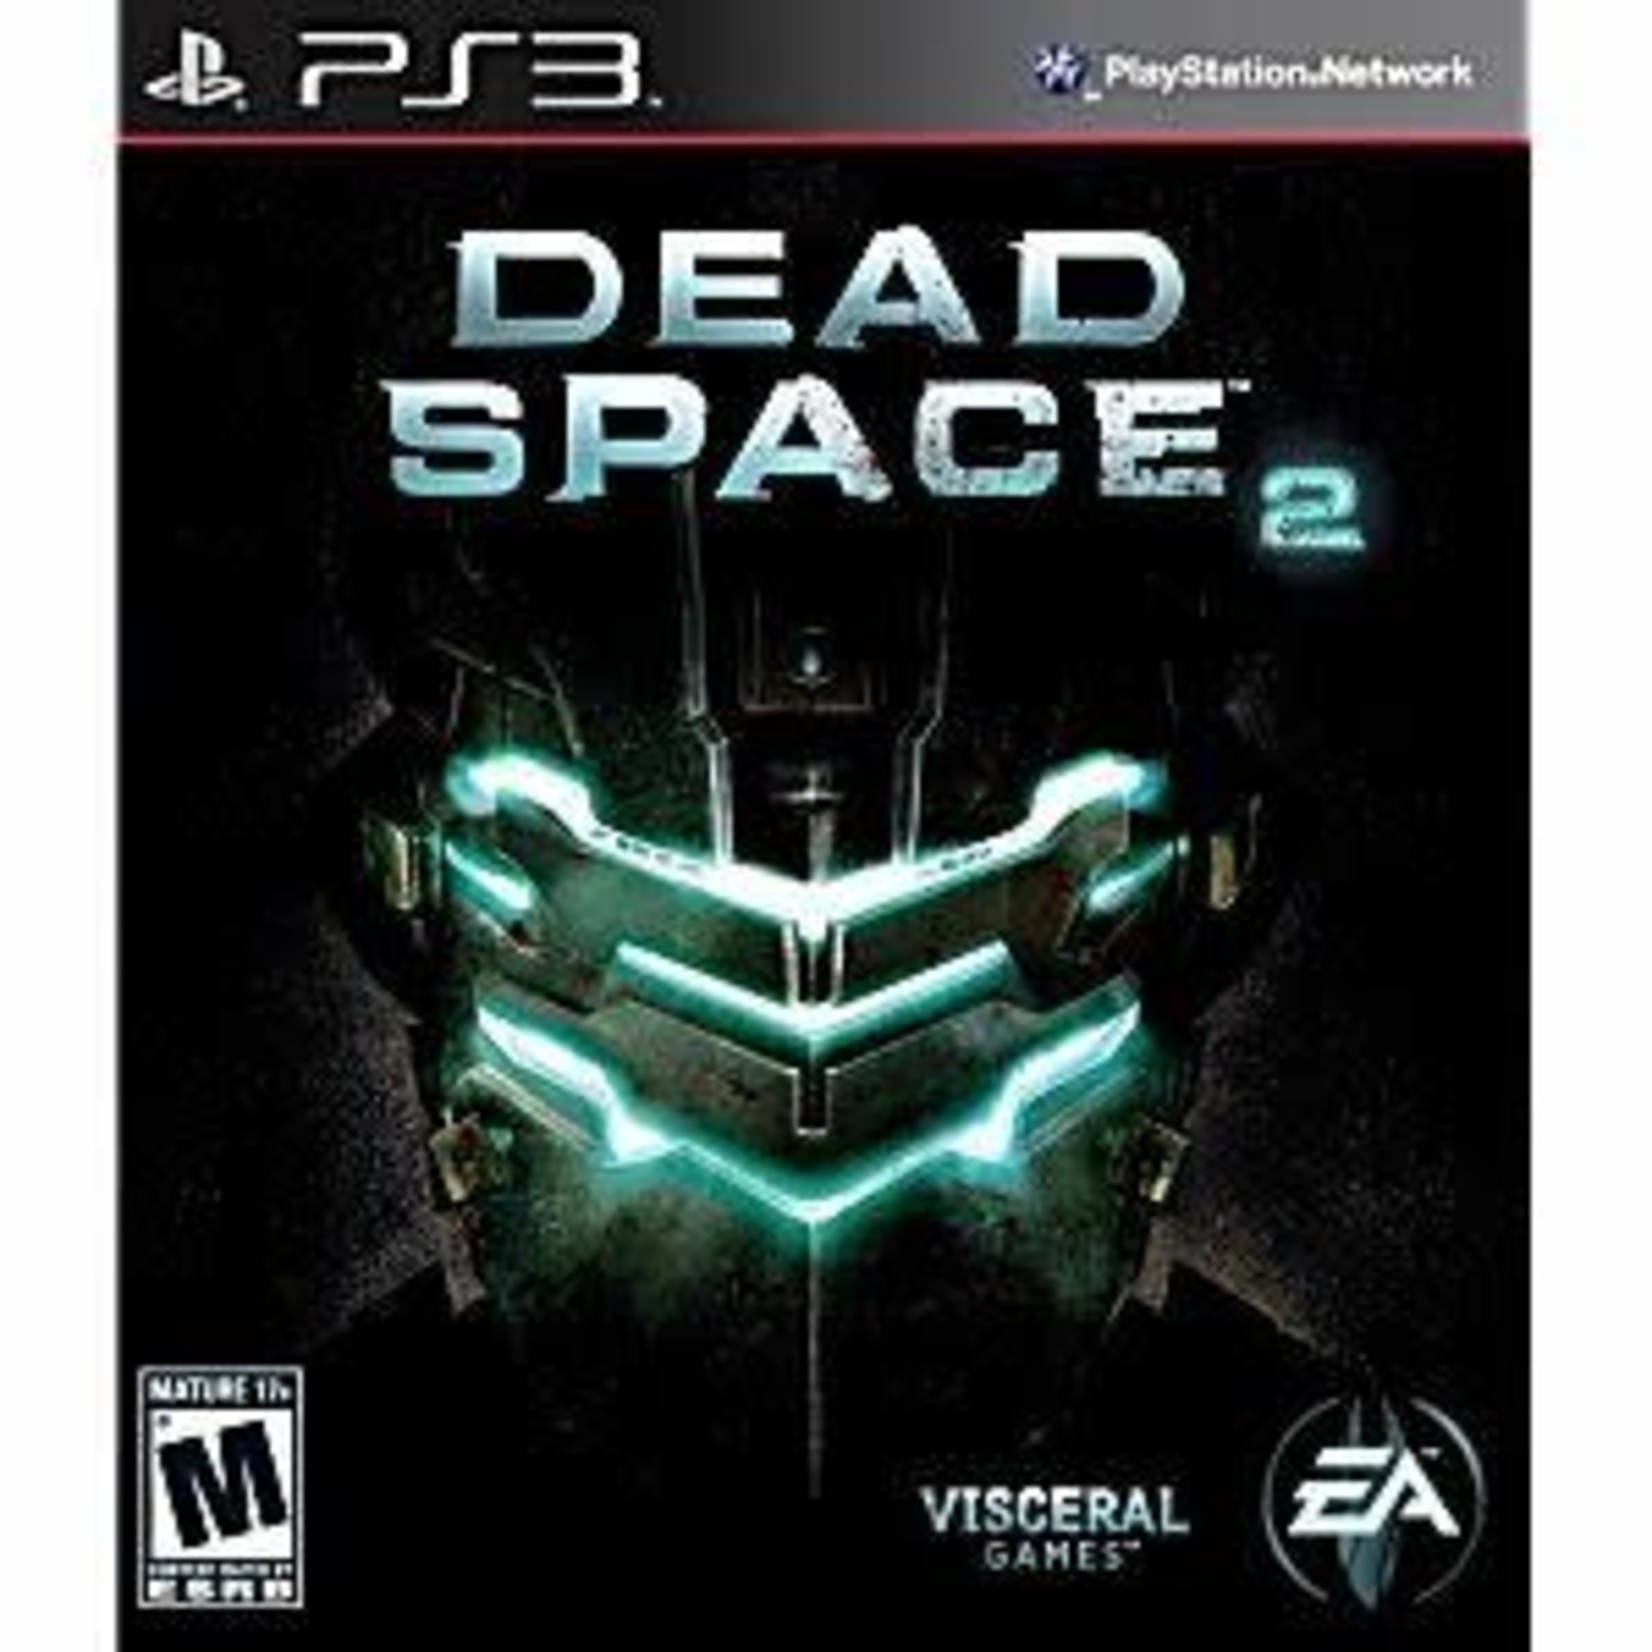 PS3-Dead Space 2